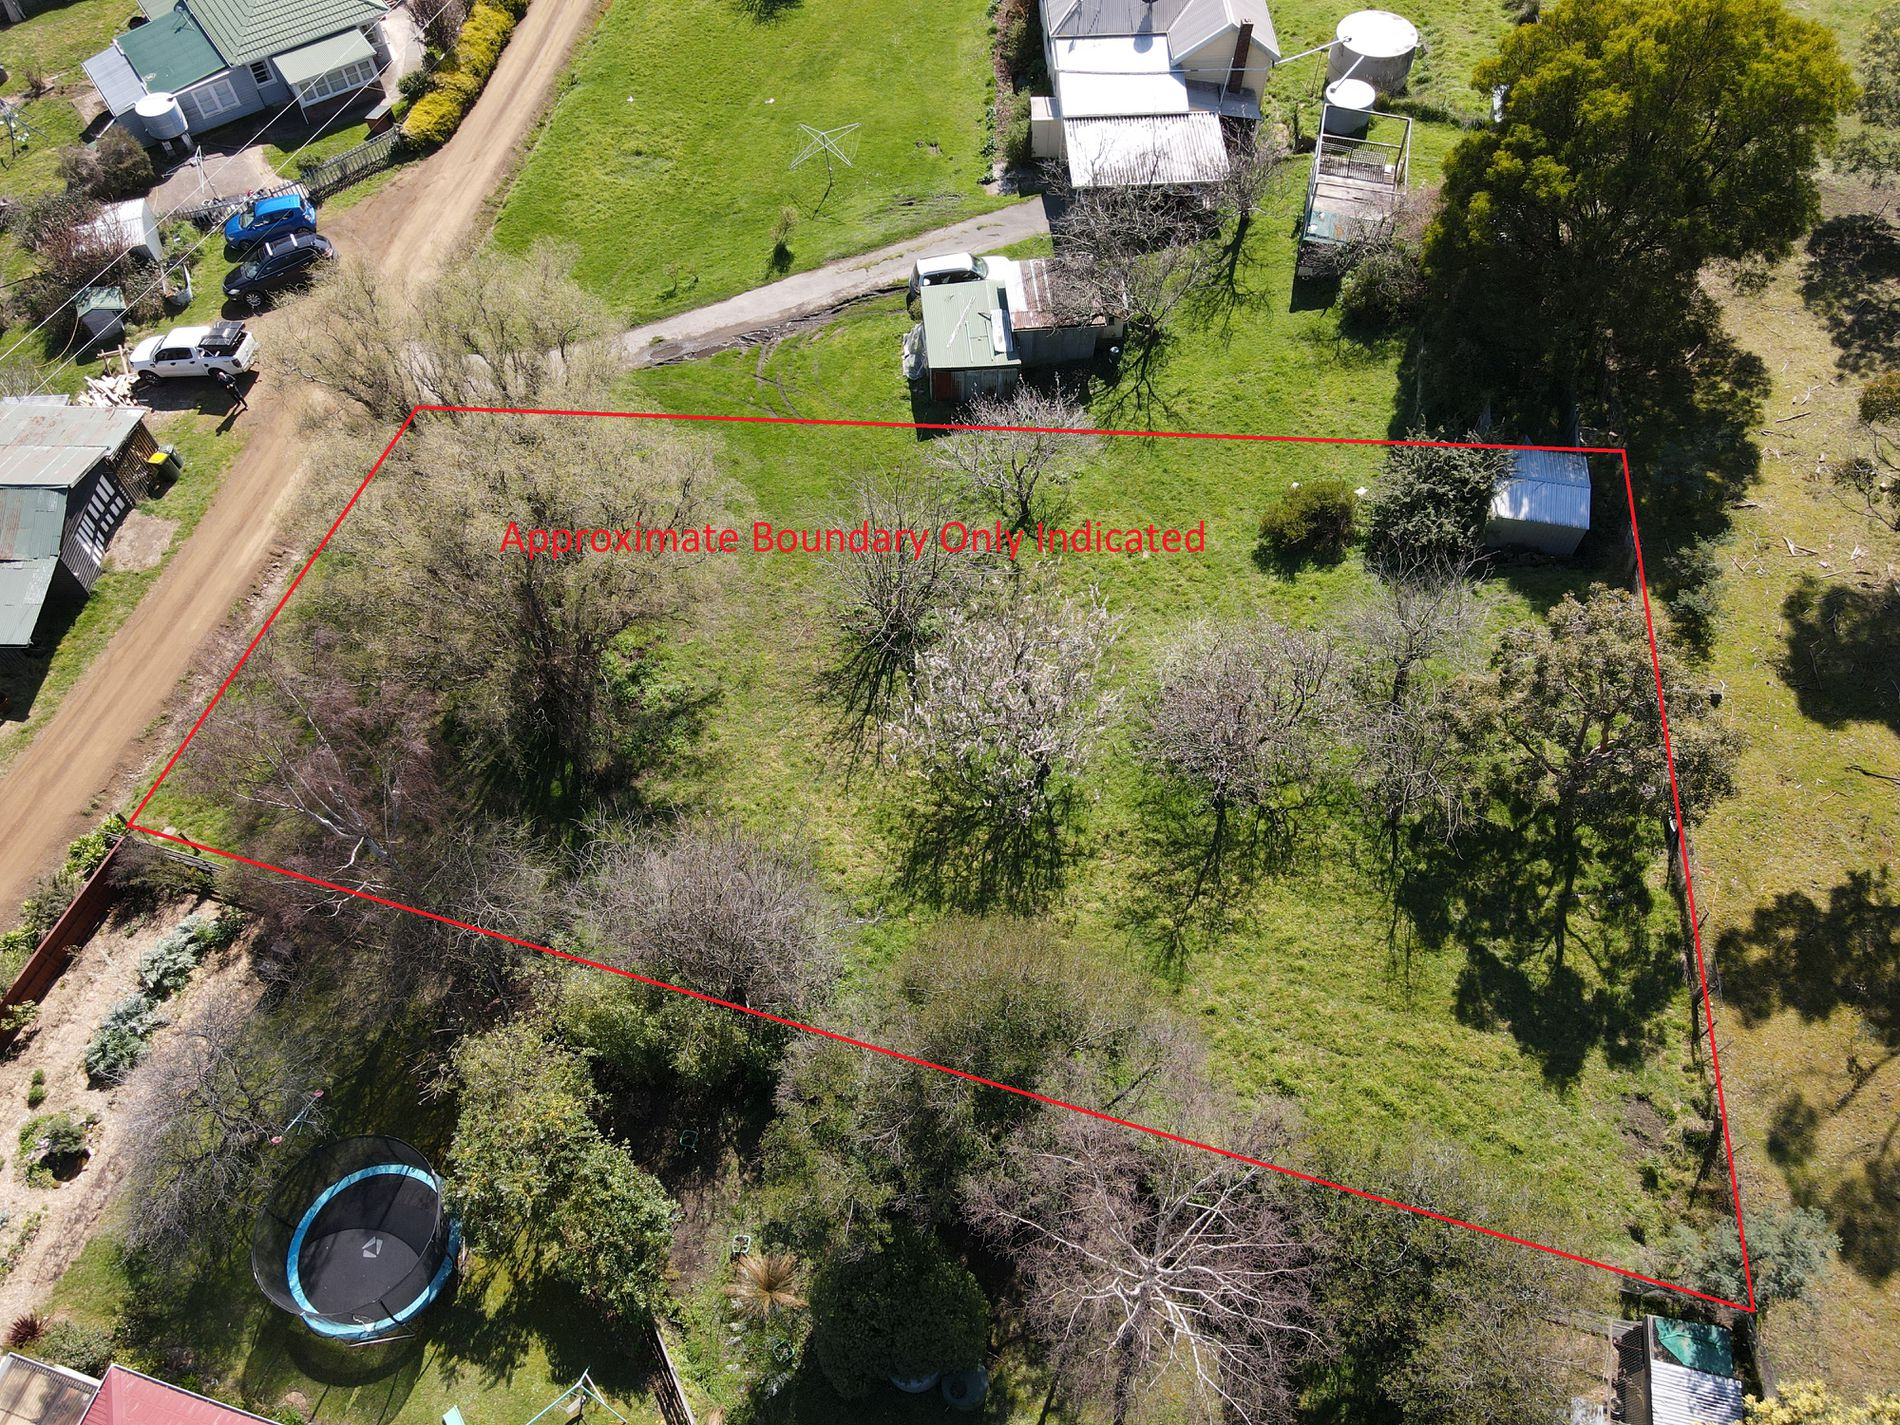 Lot 3, Tunbridges Road, Glen Huon